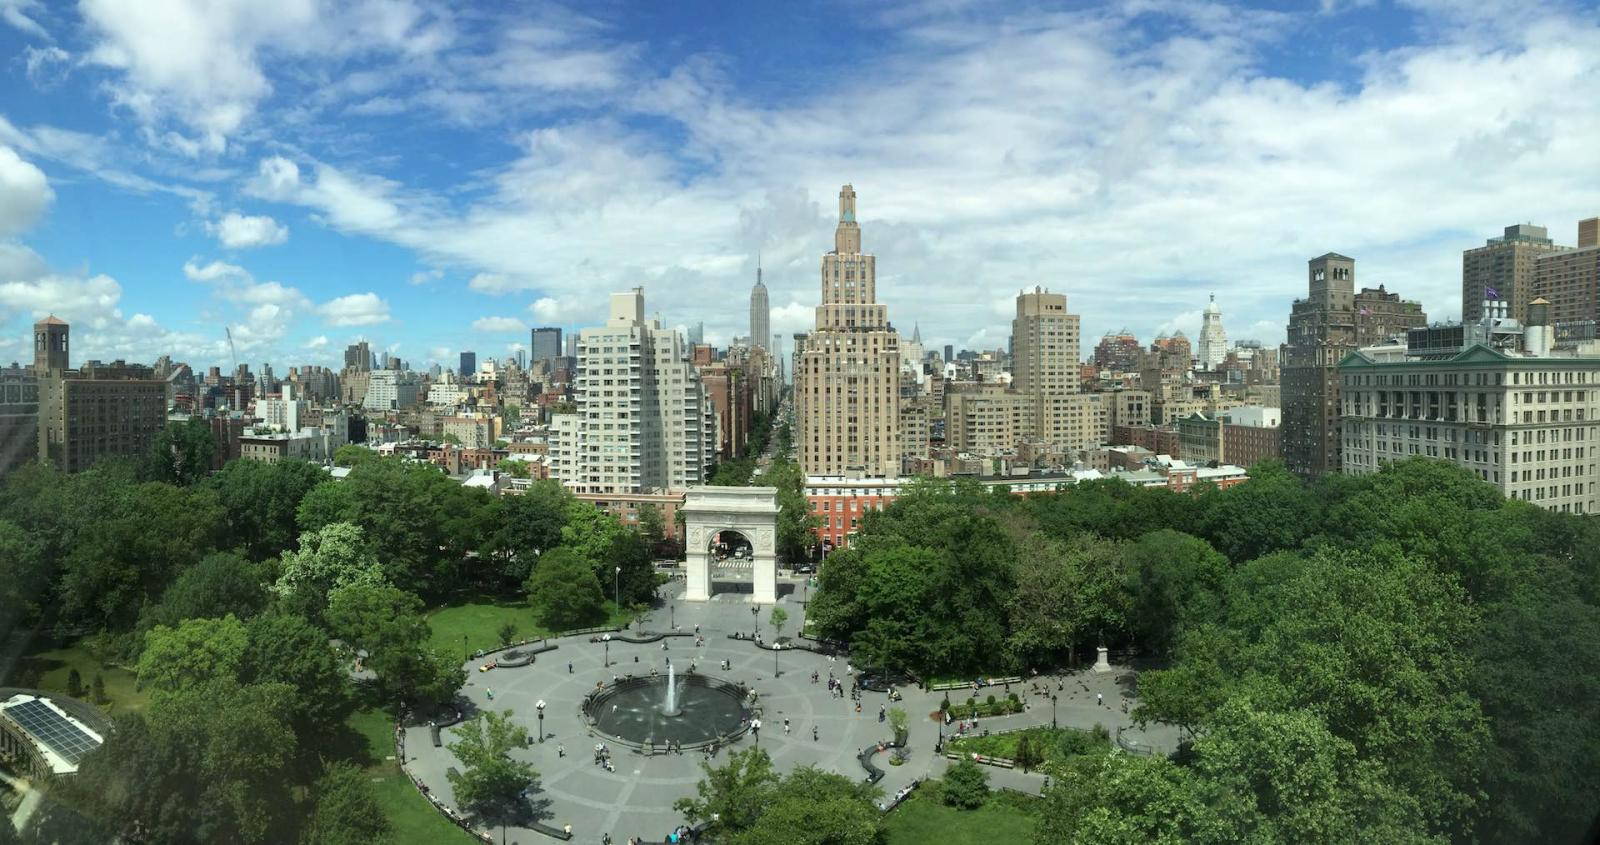 Der Washington Square Park In New York City